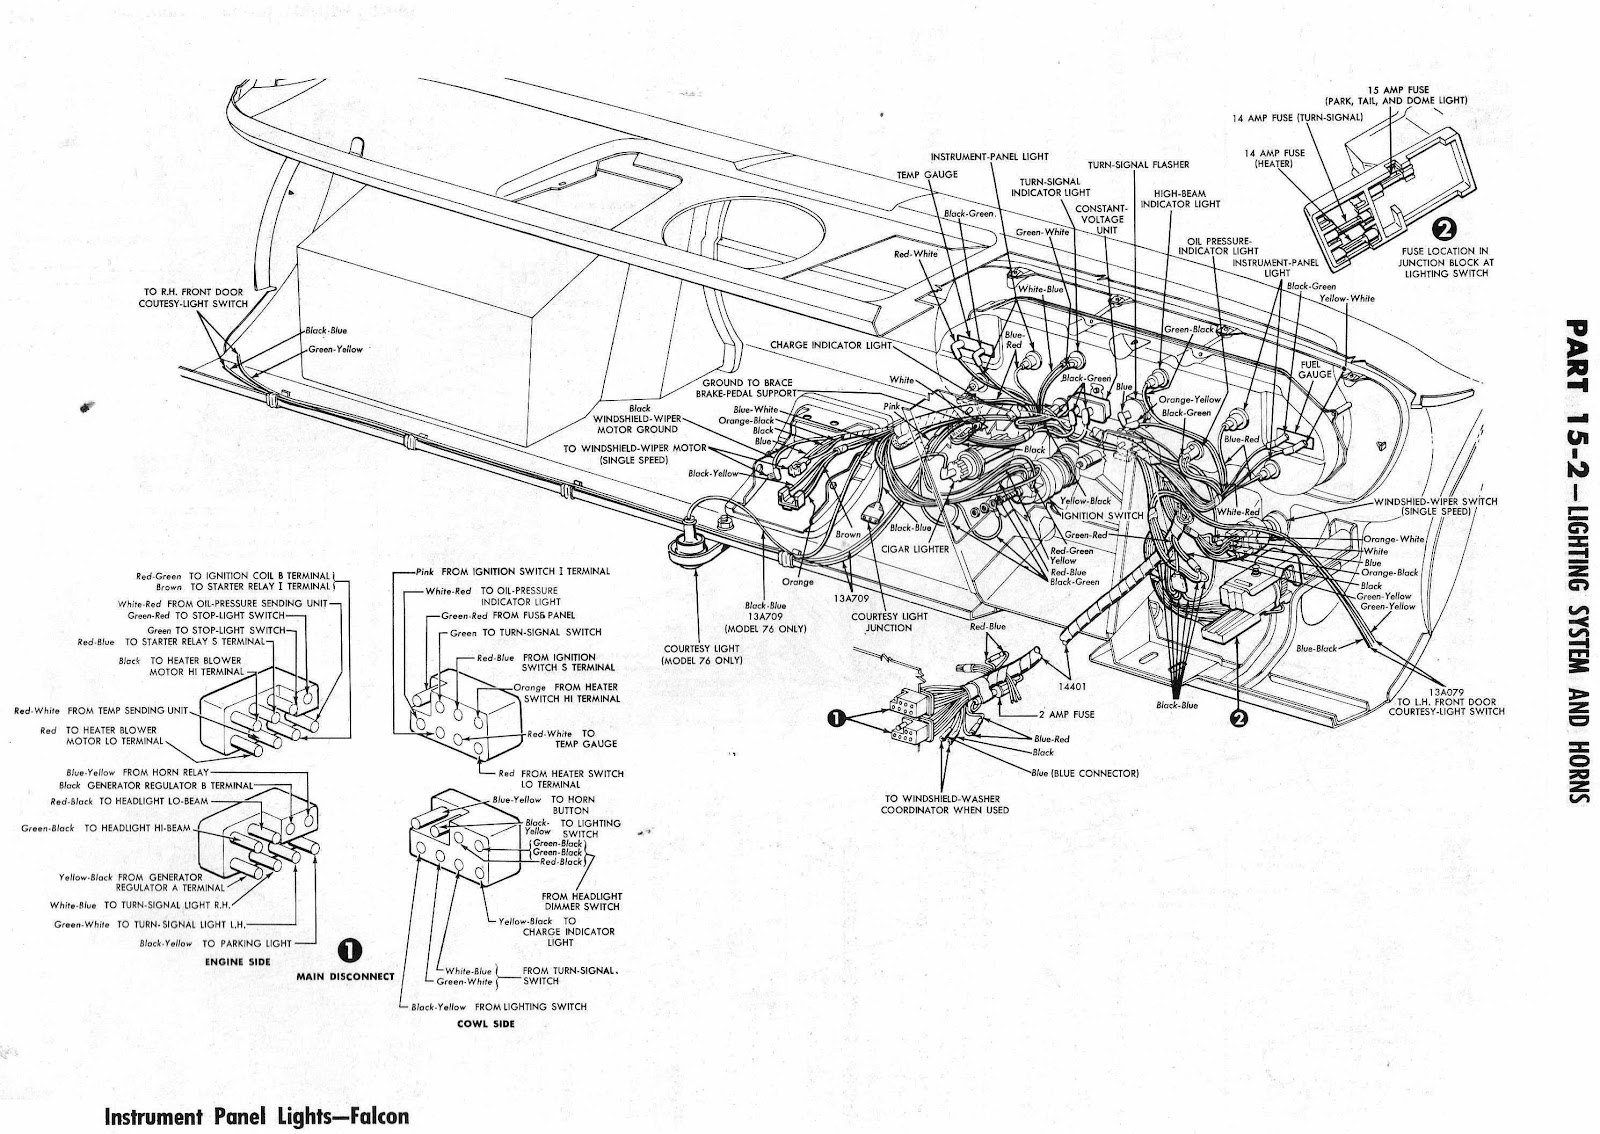 Ford Falcon 1964 Lighting System And Horns Wiring Diagram